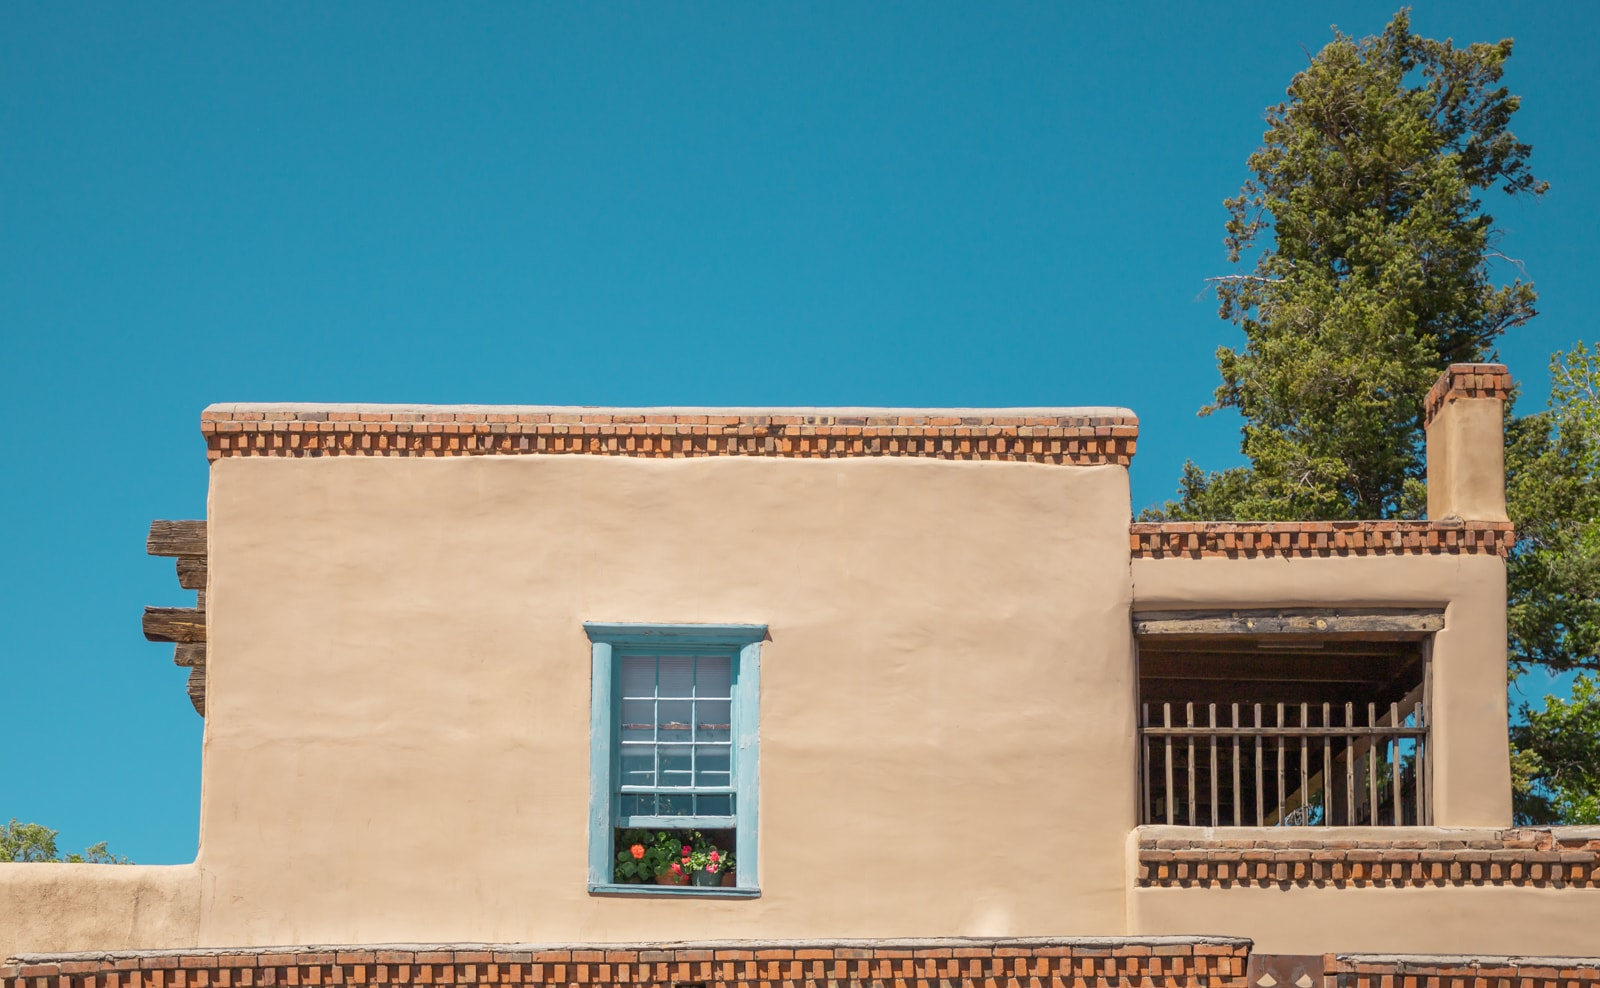 Flowers in the window of a Pueblo Revival style home